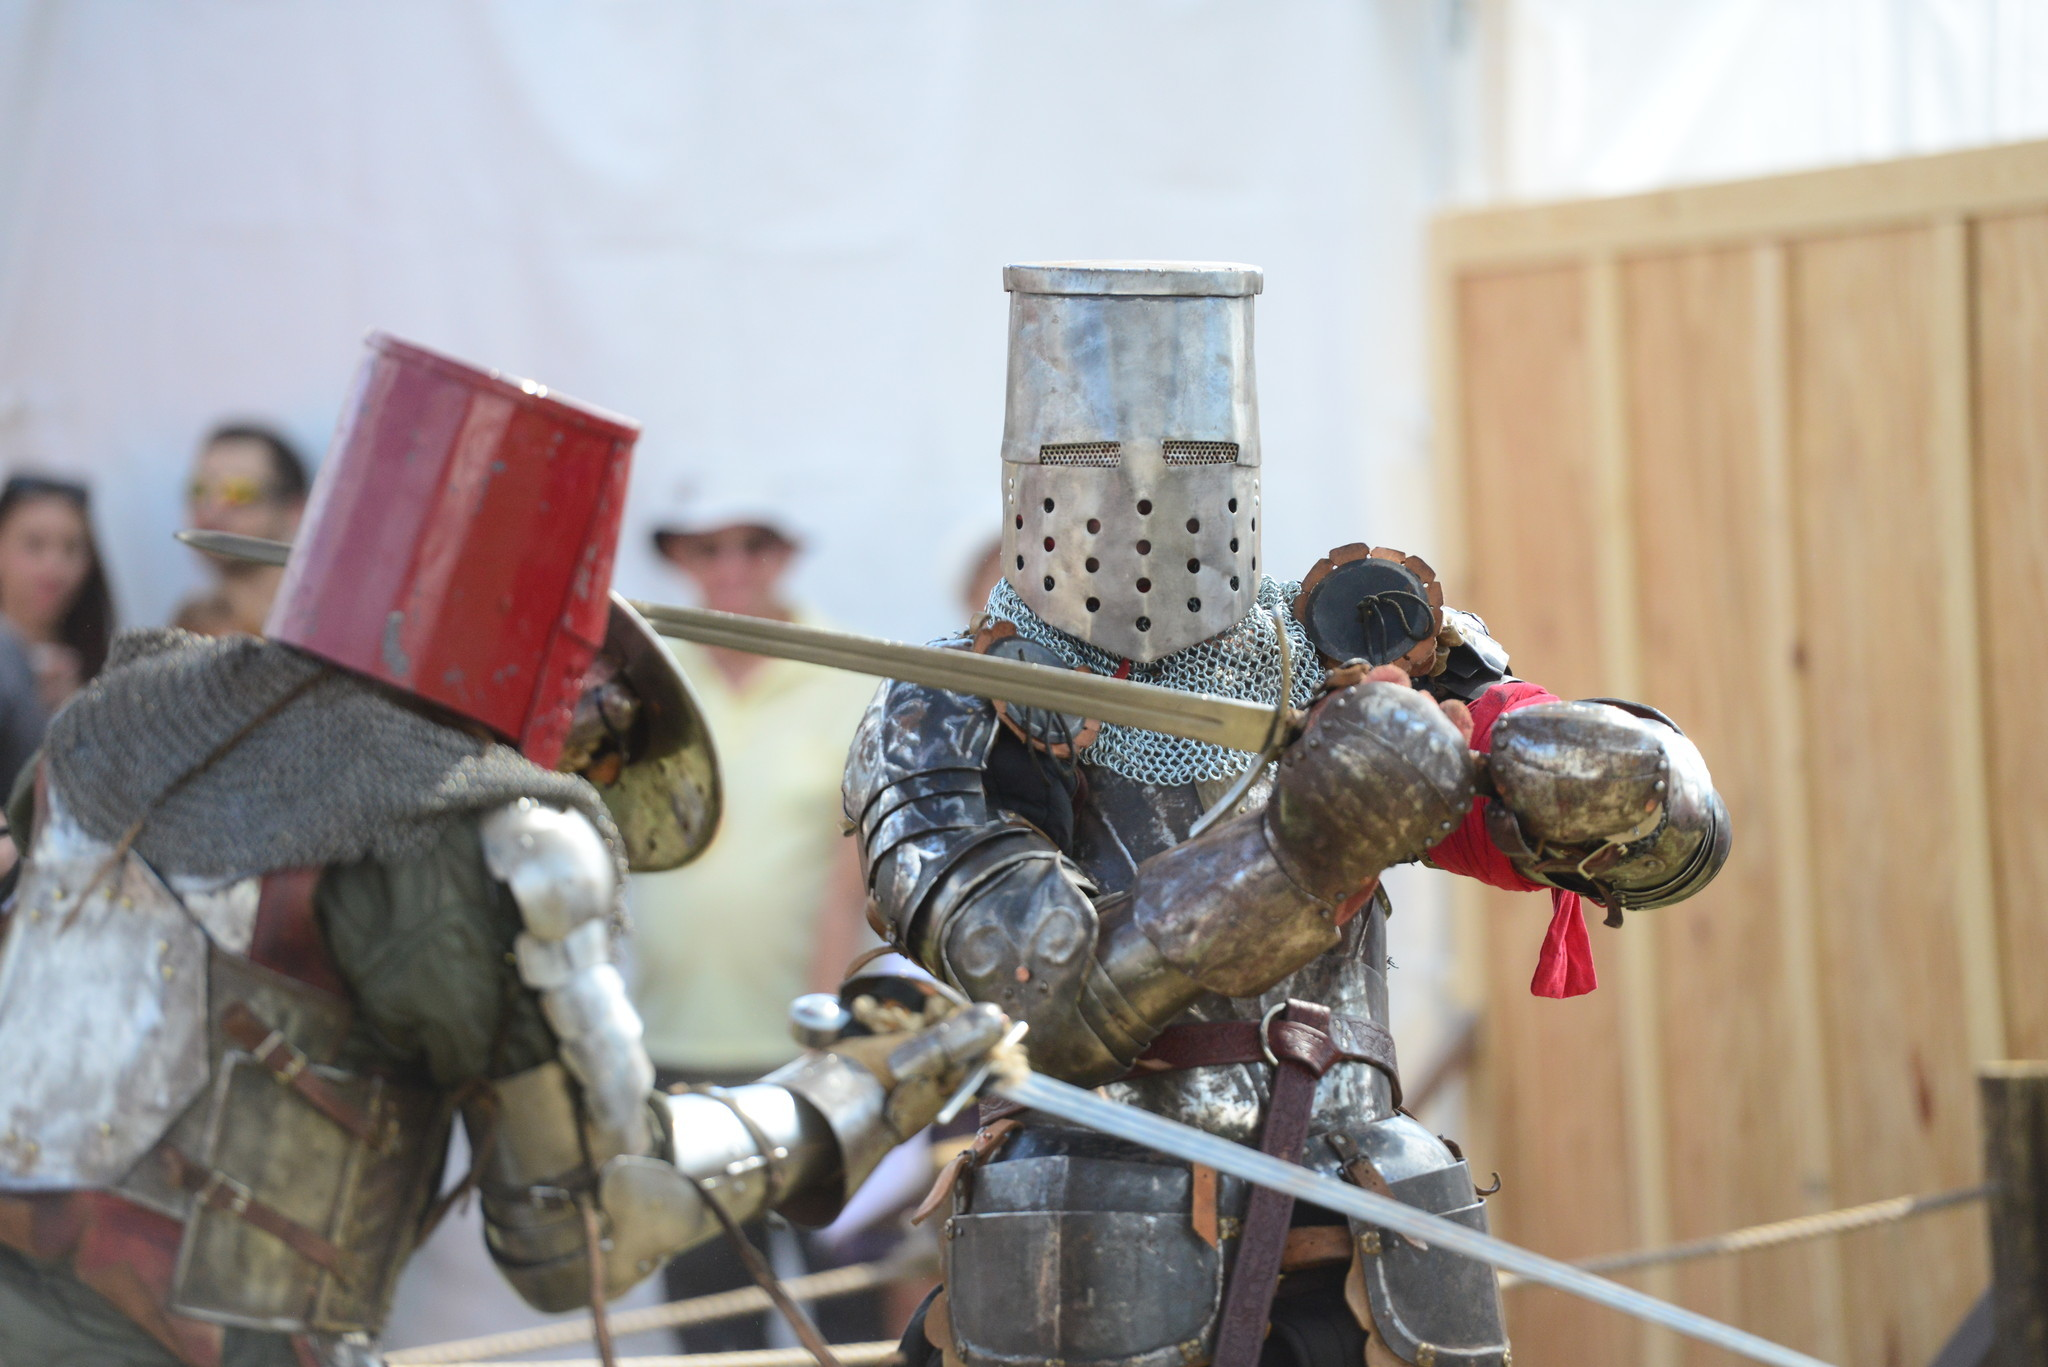 Renaissance Festival photos - Fight